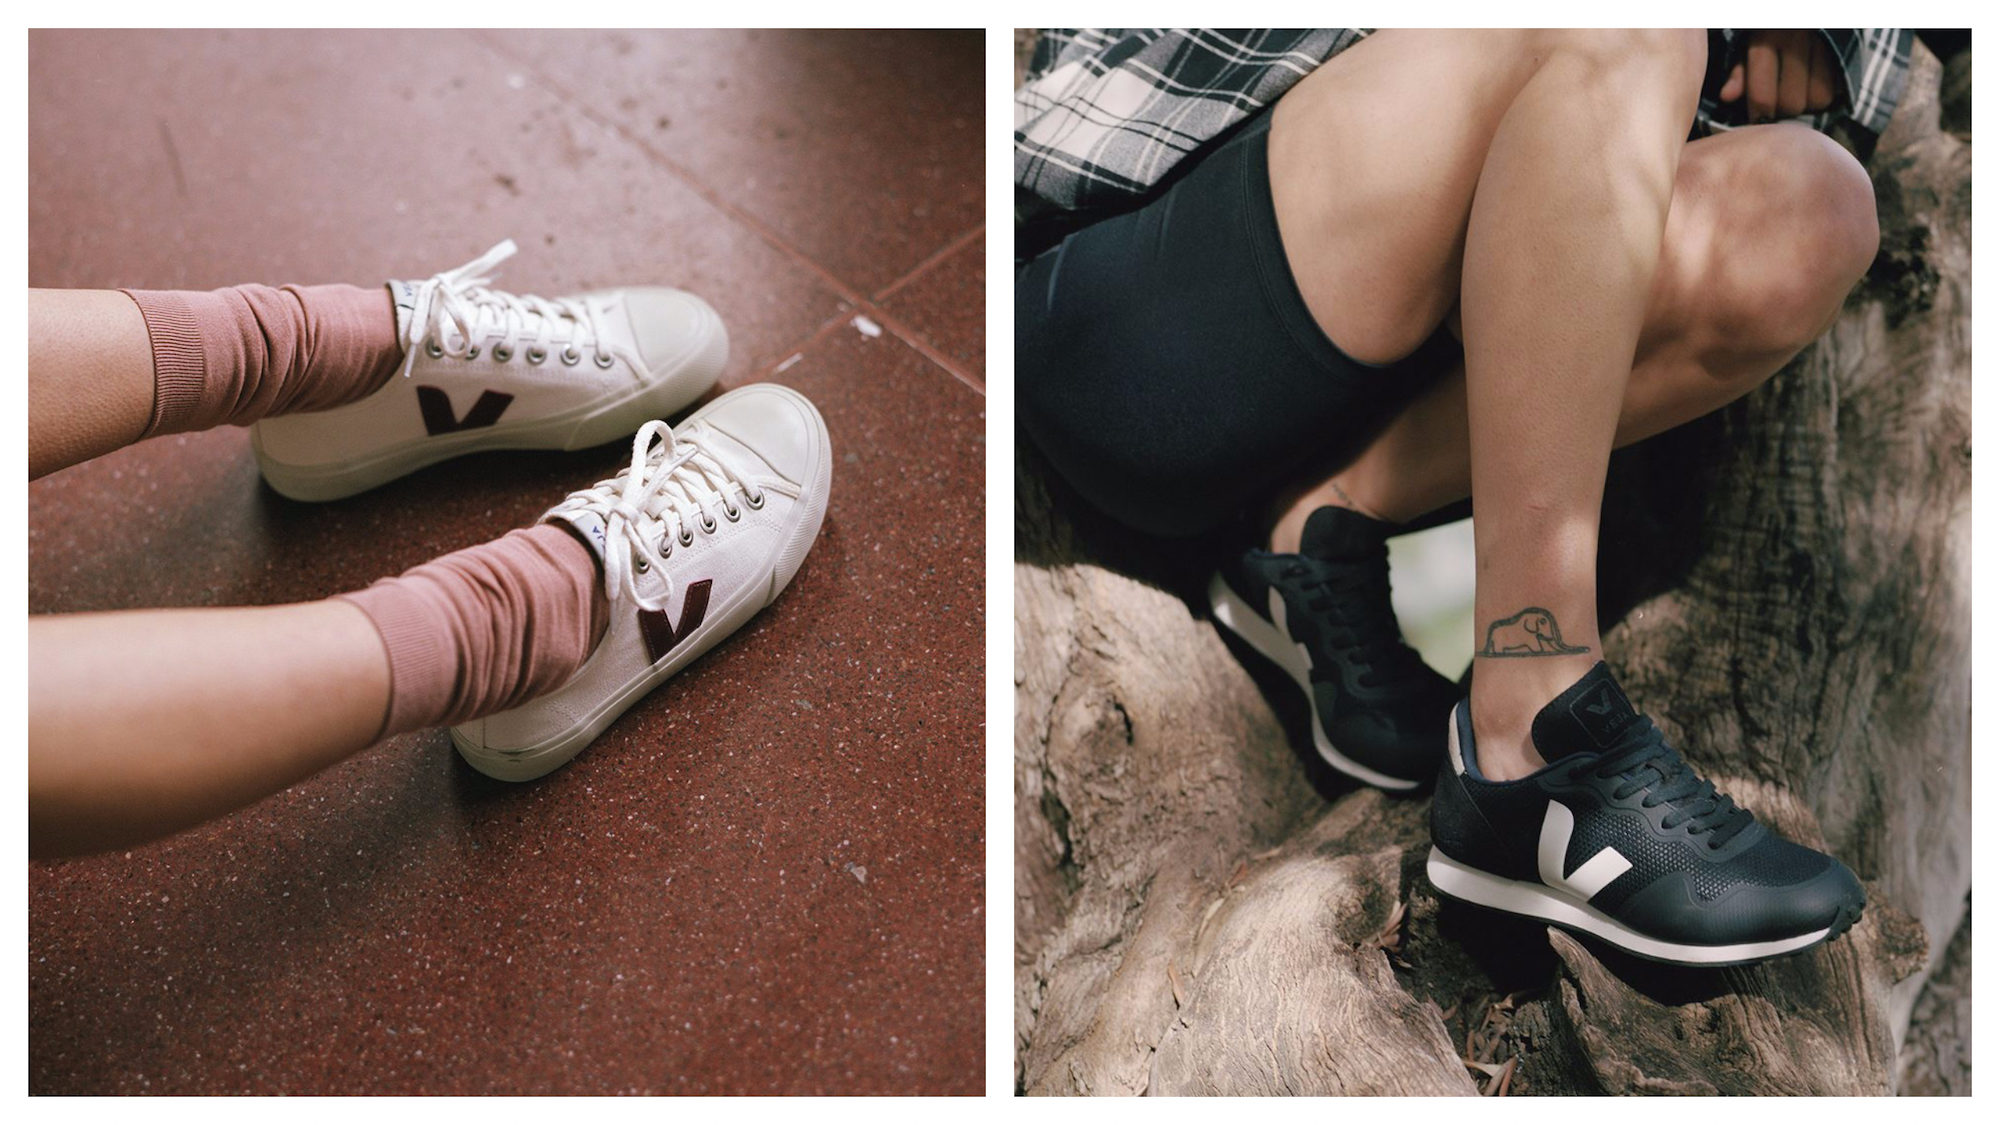 Parisian brand to shop for shoes is Veja, which does sustainably made sneakers like these white ones (left) and black mock leather pair (right).